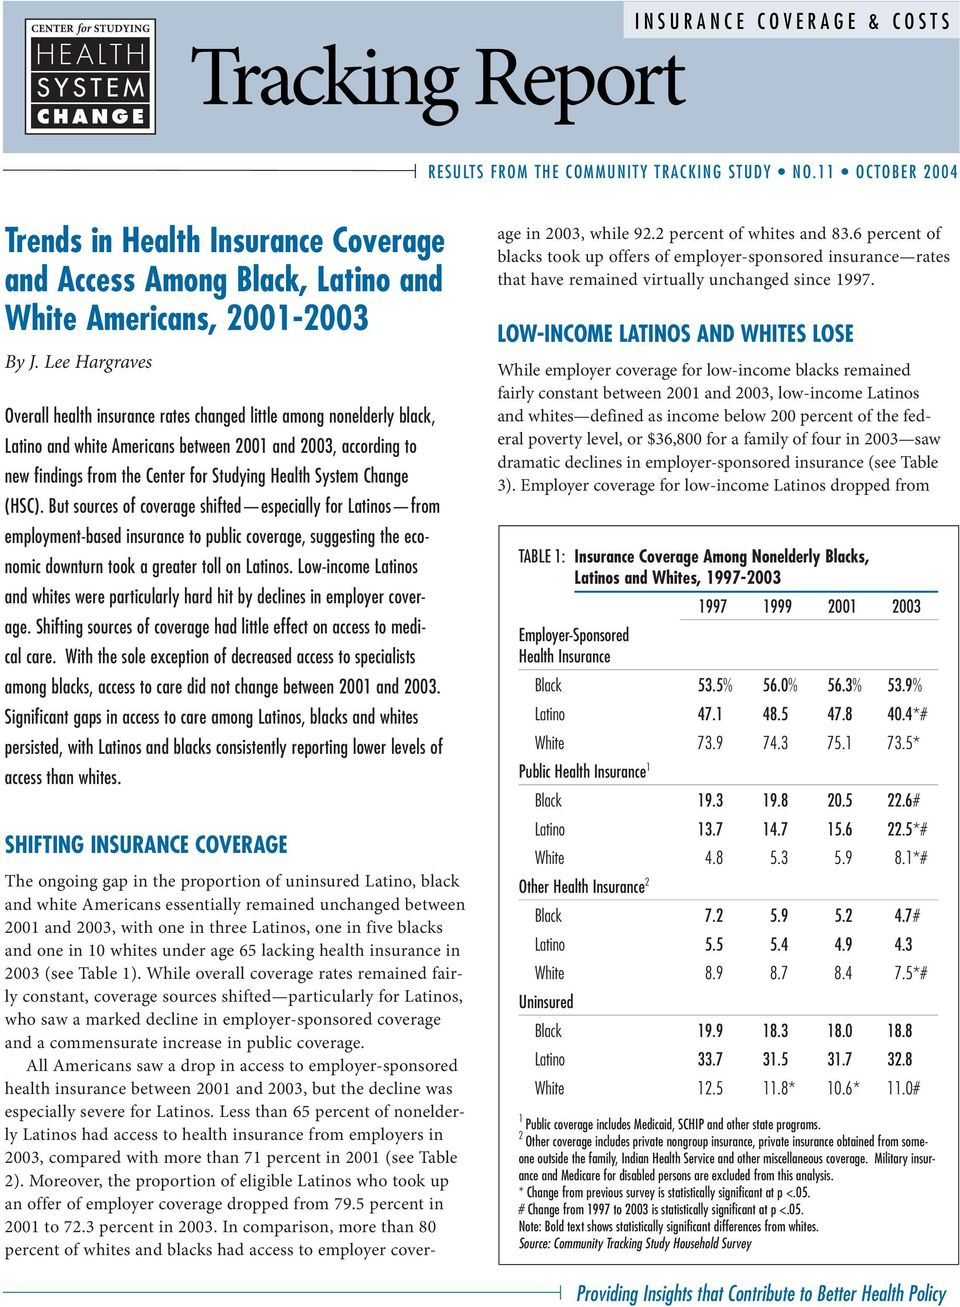 Lee Hargraves Overall health insurance rates changed little among nonelderly black, Latino and white Americans between 001 and 003, according to new findings from the Center for Studying Health